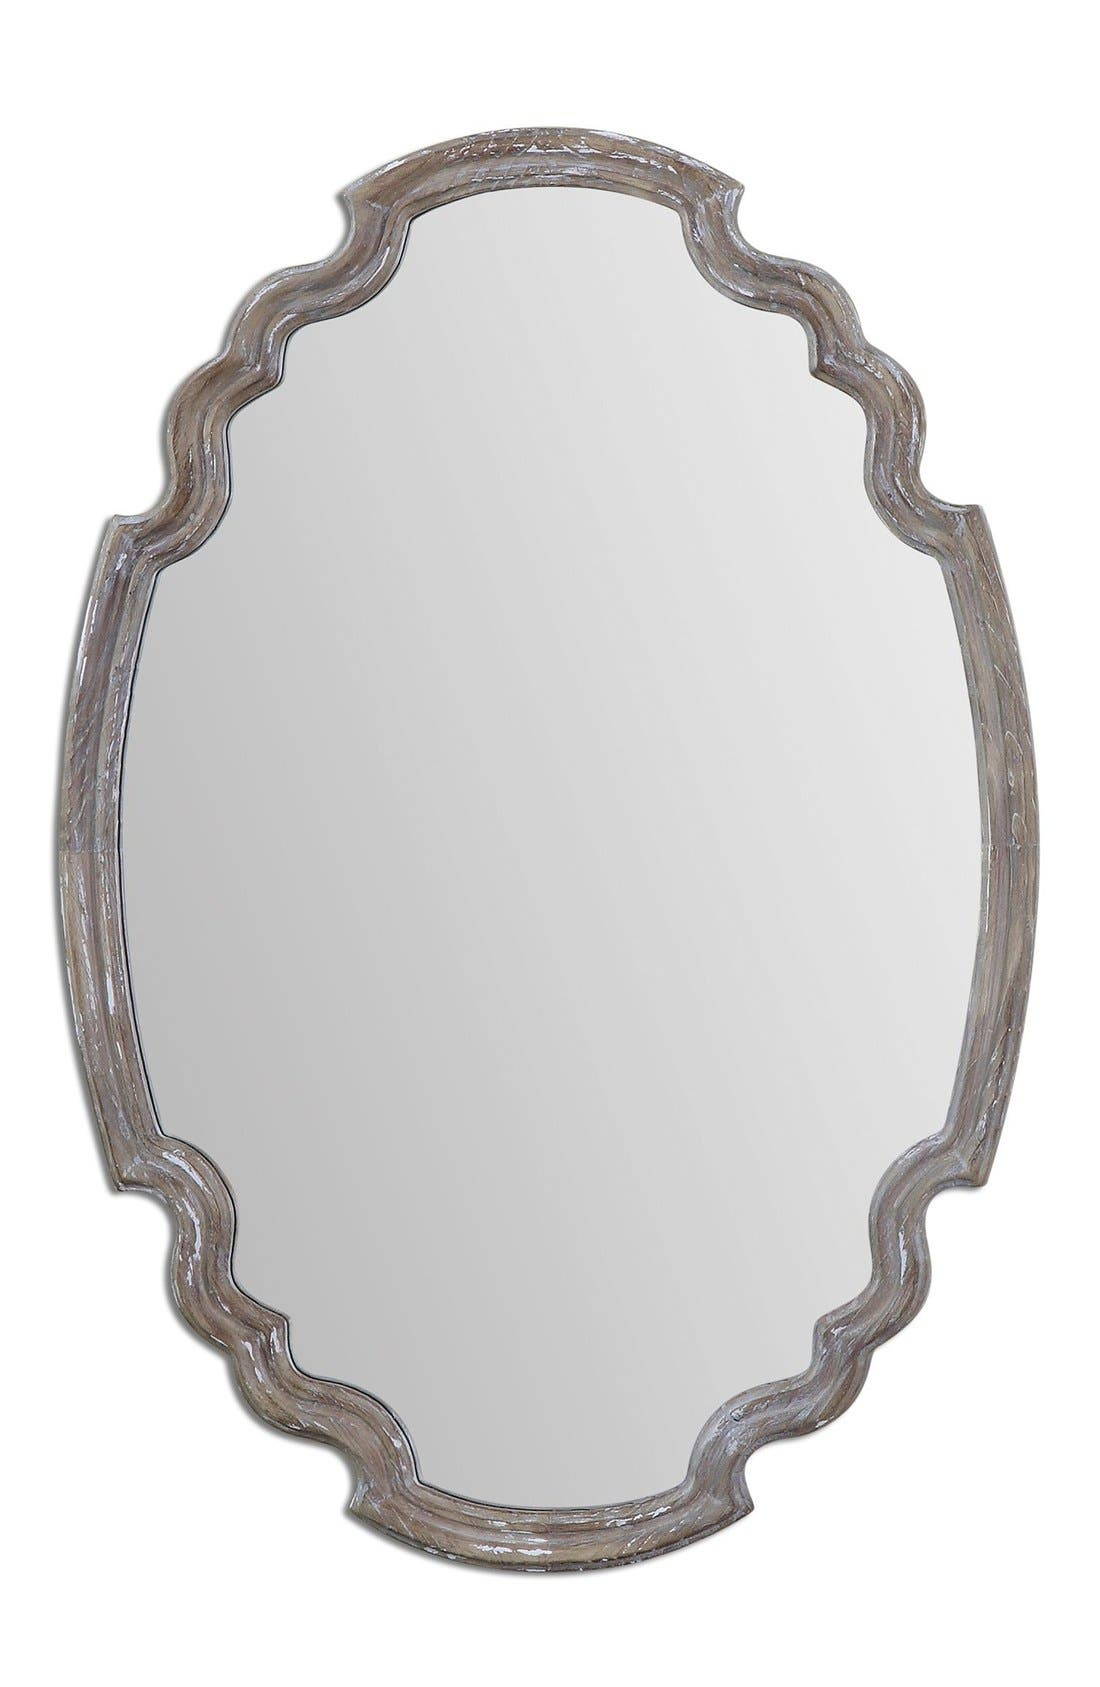 'Ludovica' Aged Finish Oval Wall Mirror,                         Main,                         color, 020